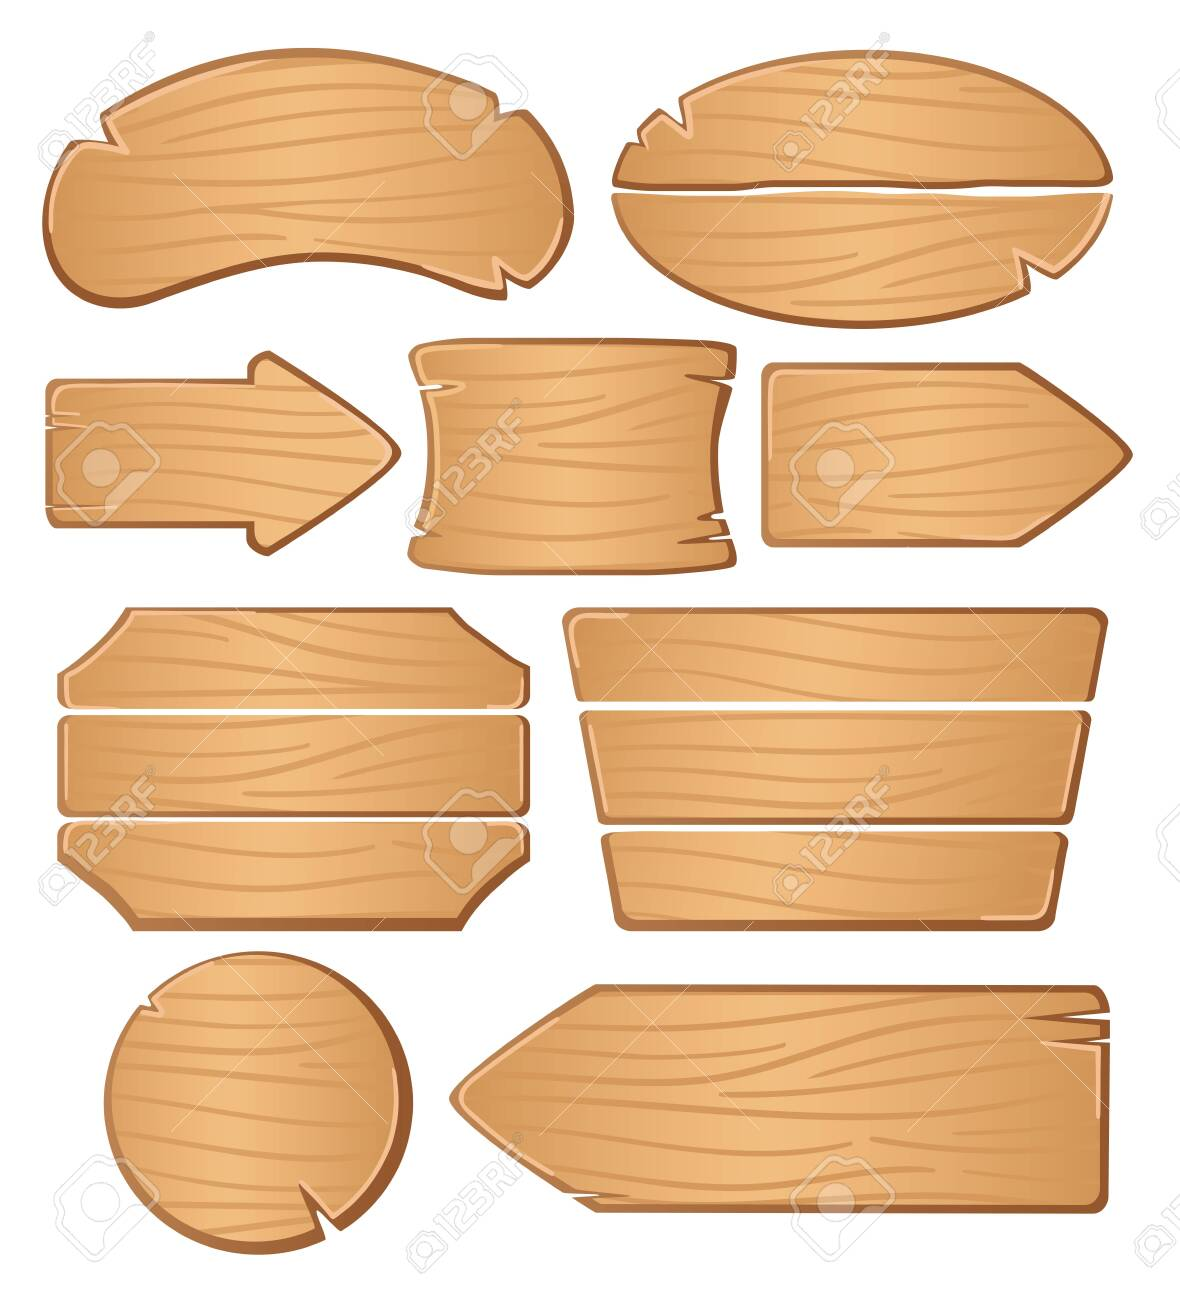 Wooden boards for banners or messages. - 136820948